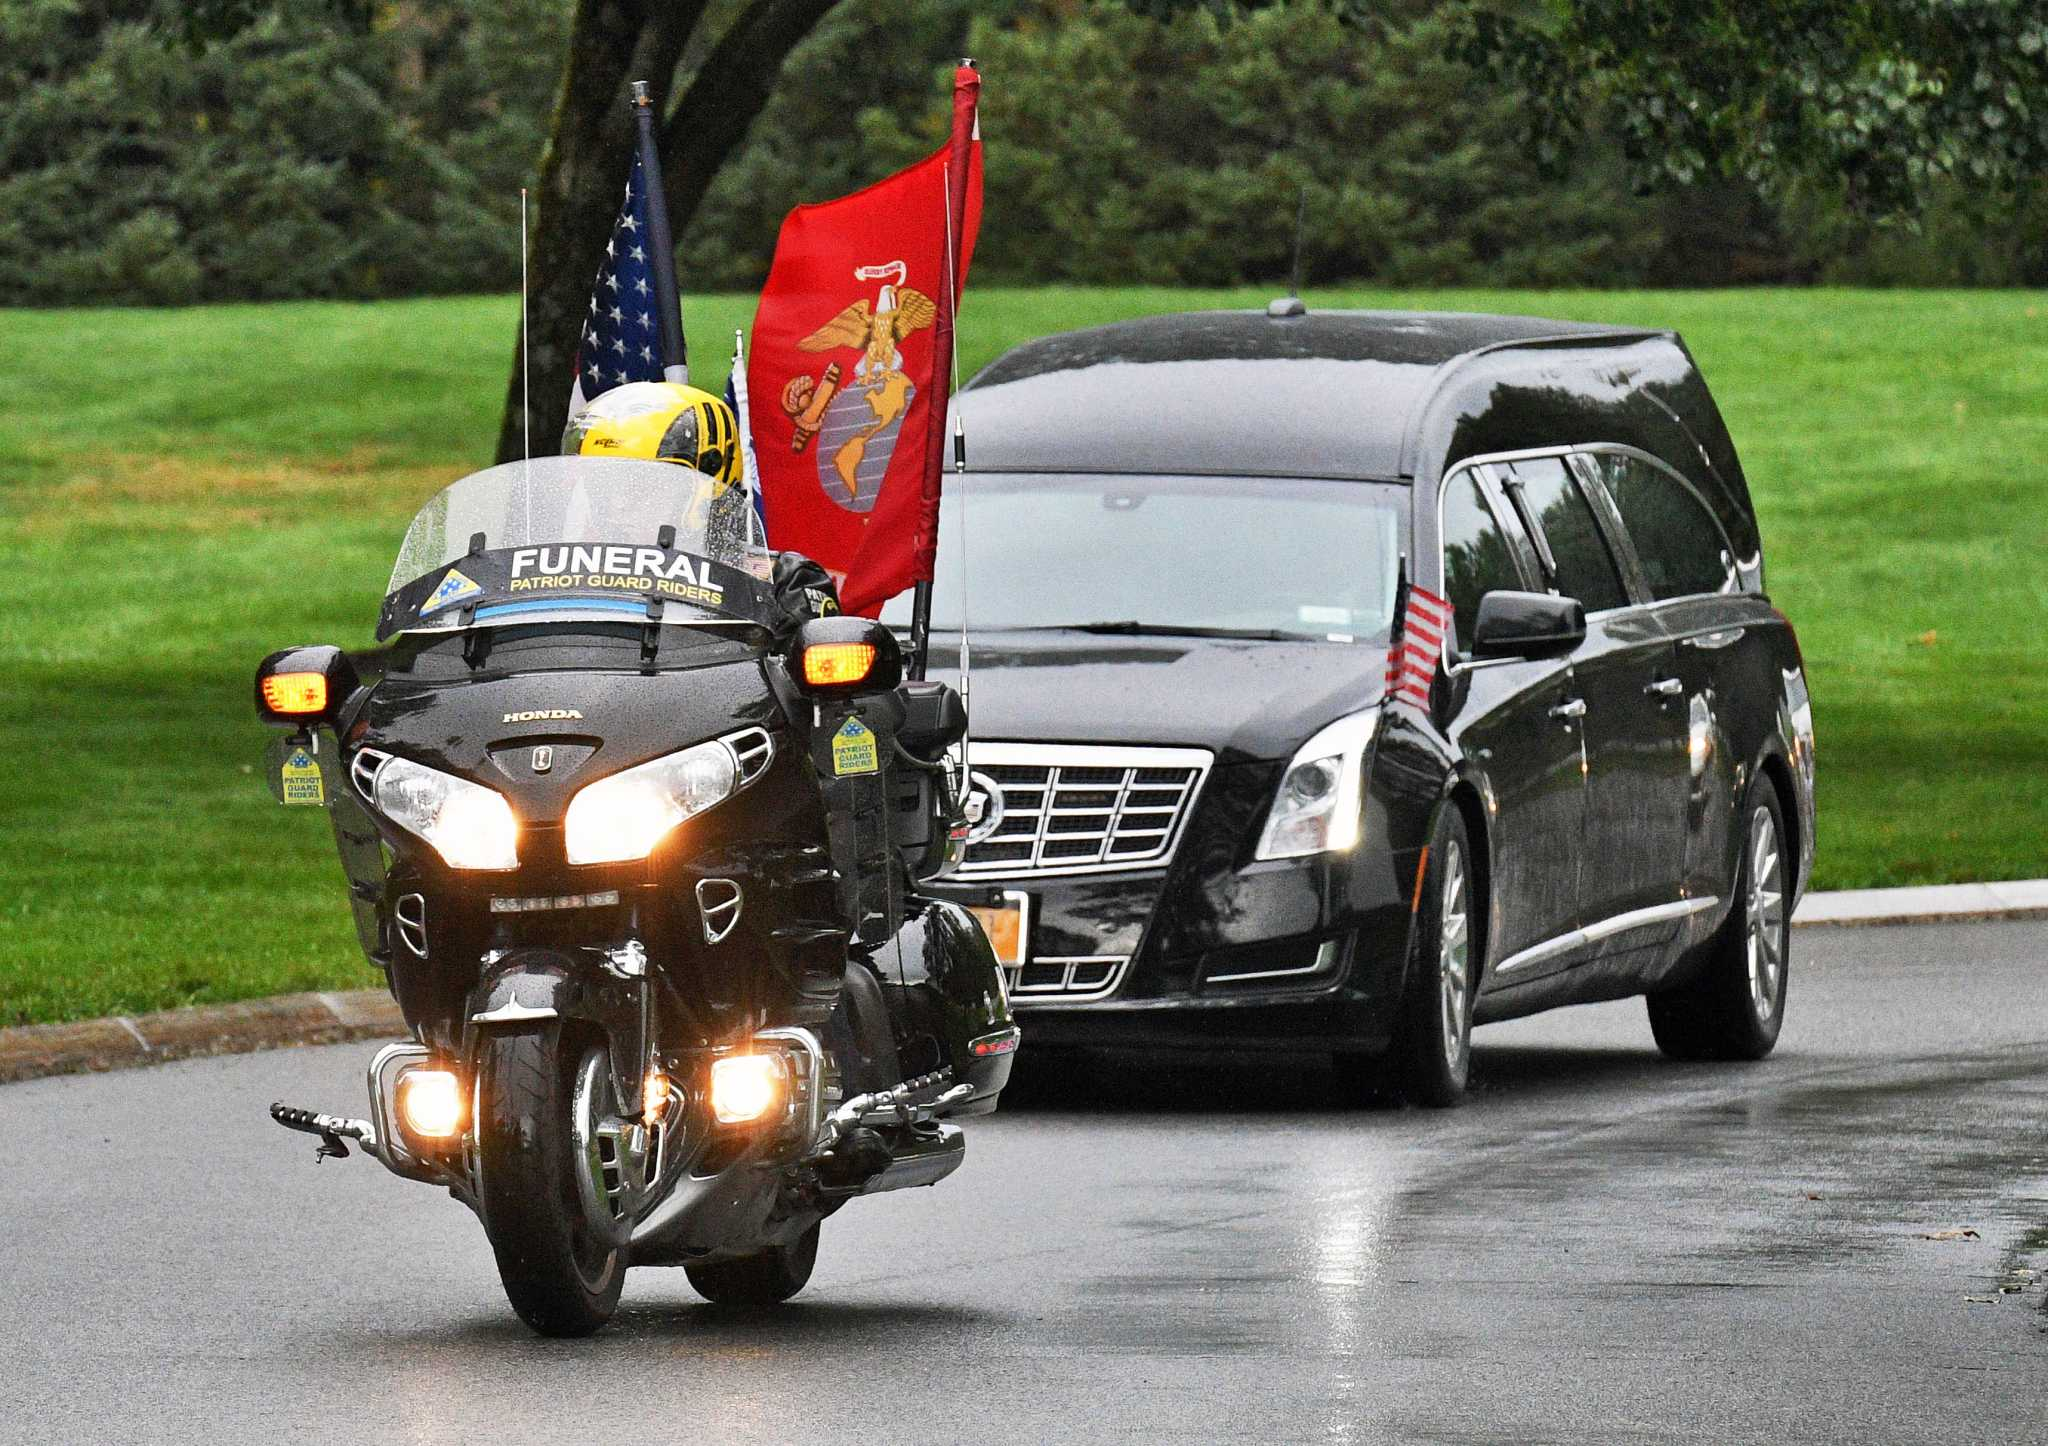 Funeral held for final member of schoharie limo party times union izmirmasajfo